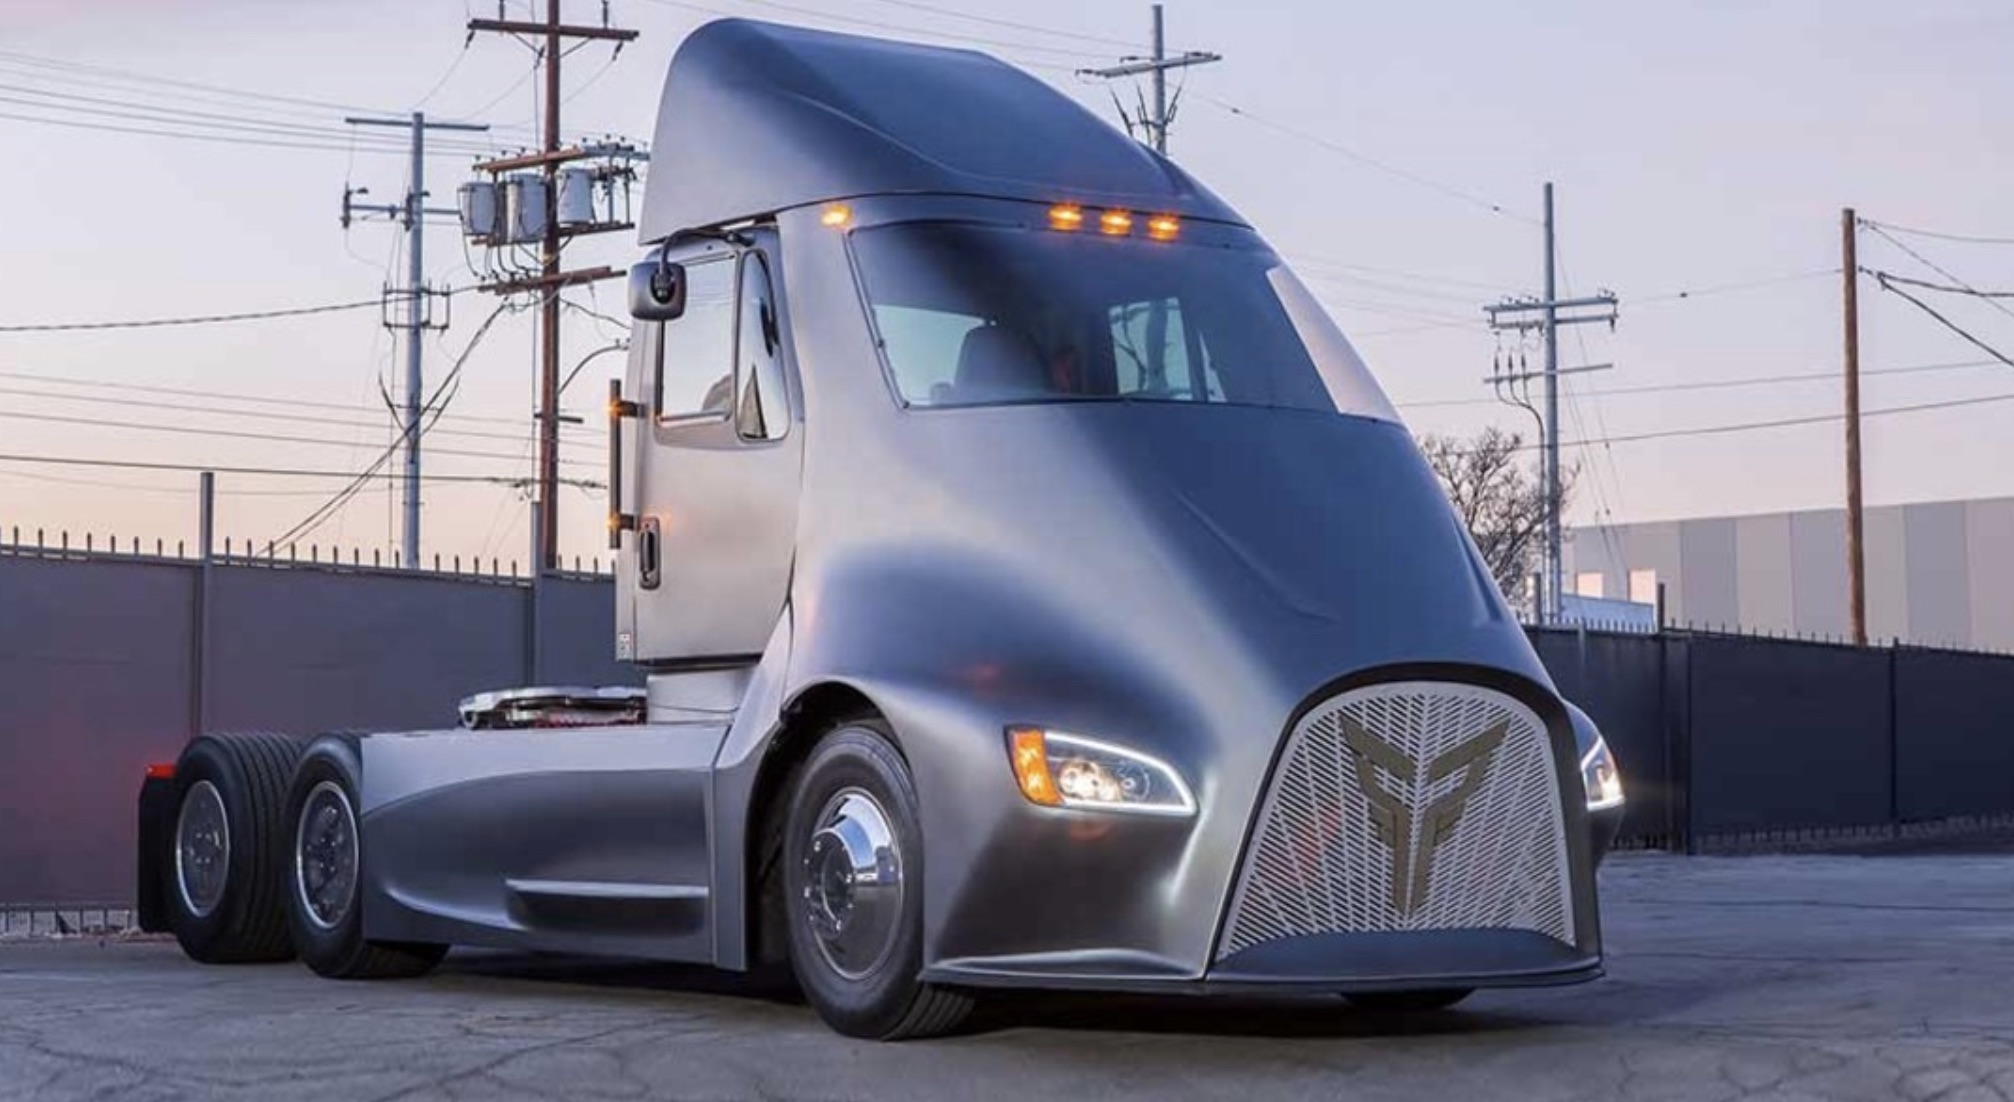 Thor Trucks Reveals Electric Semi Truck To Take On Tesla